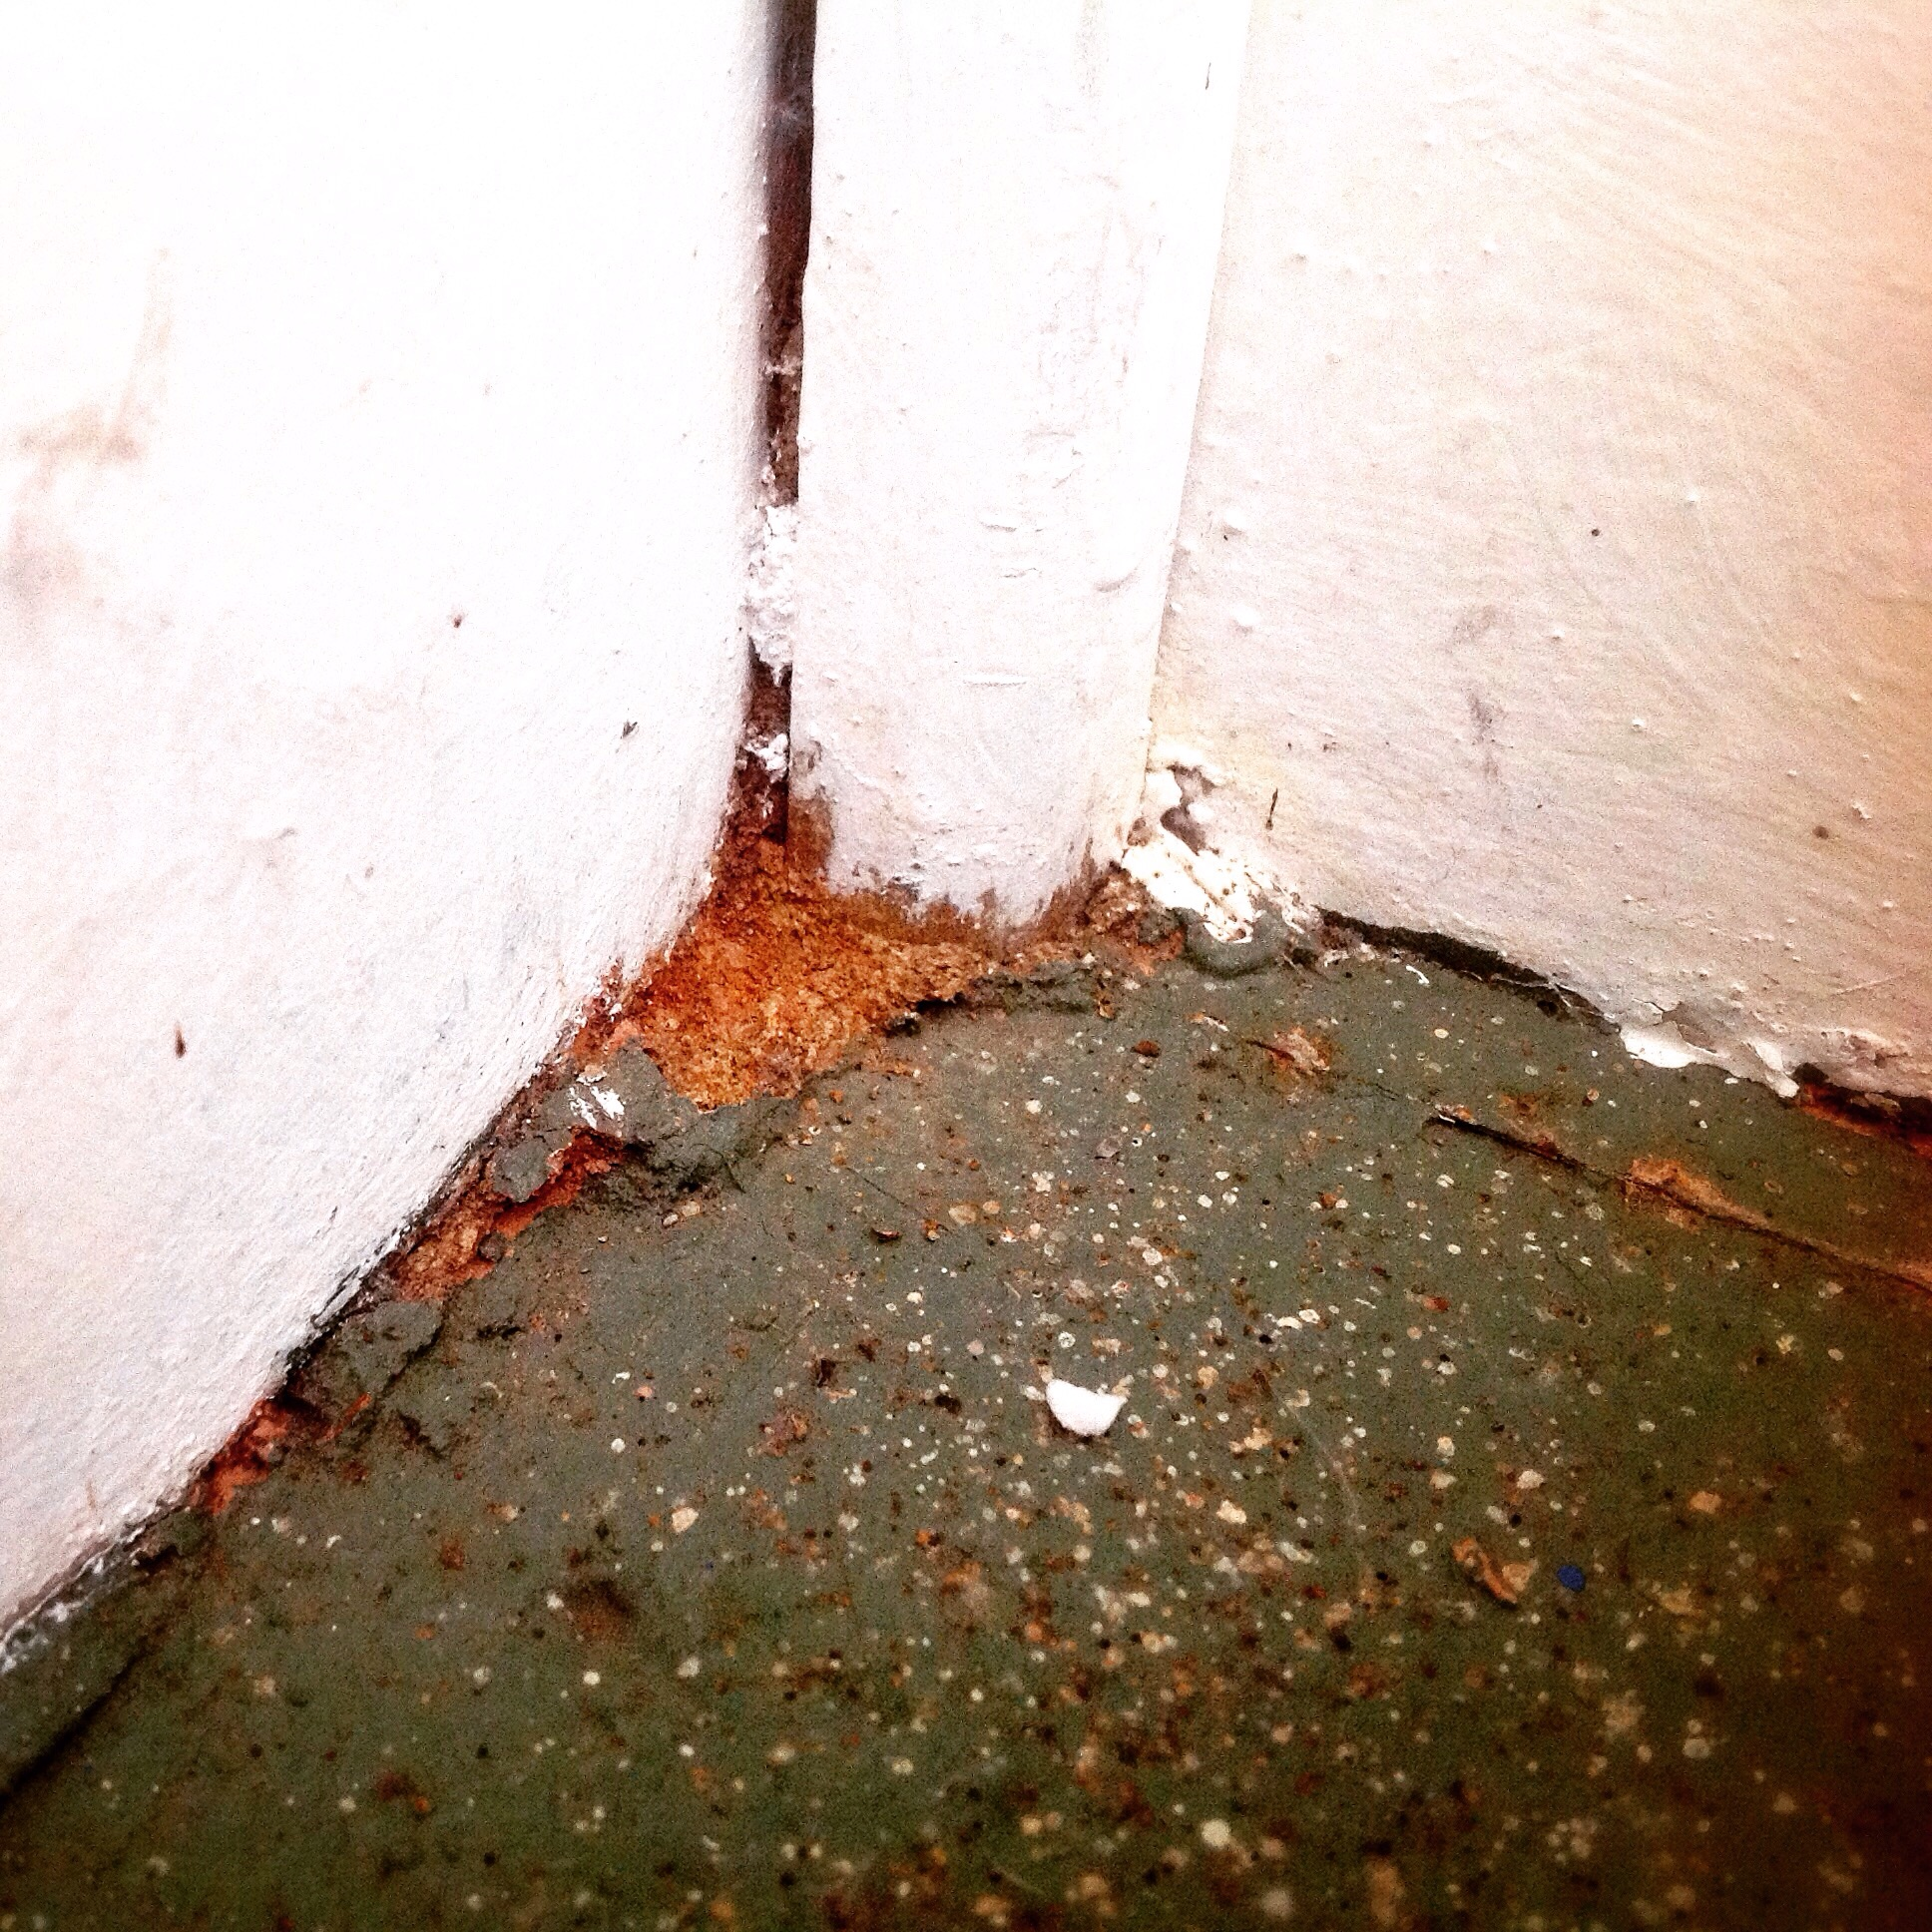 The Termite mudding is clearly visible on this property on the Central Coast, that is, after you remove the paint!